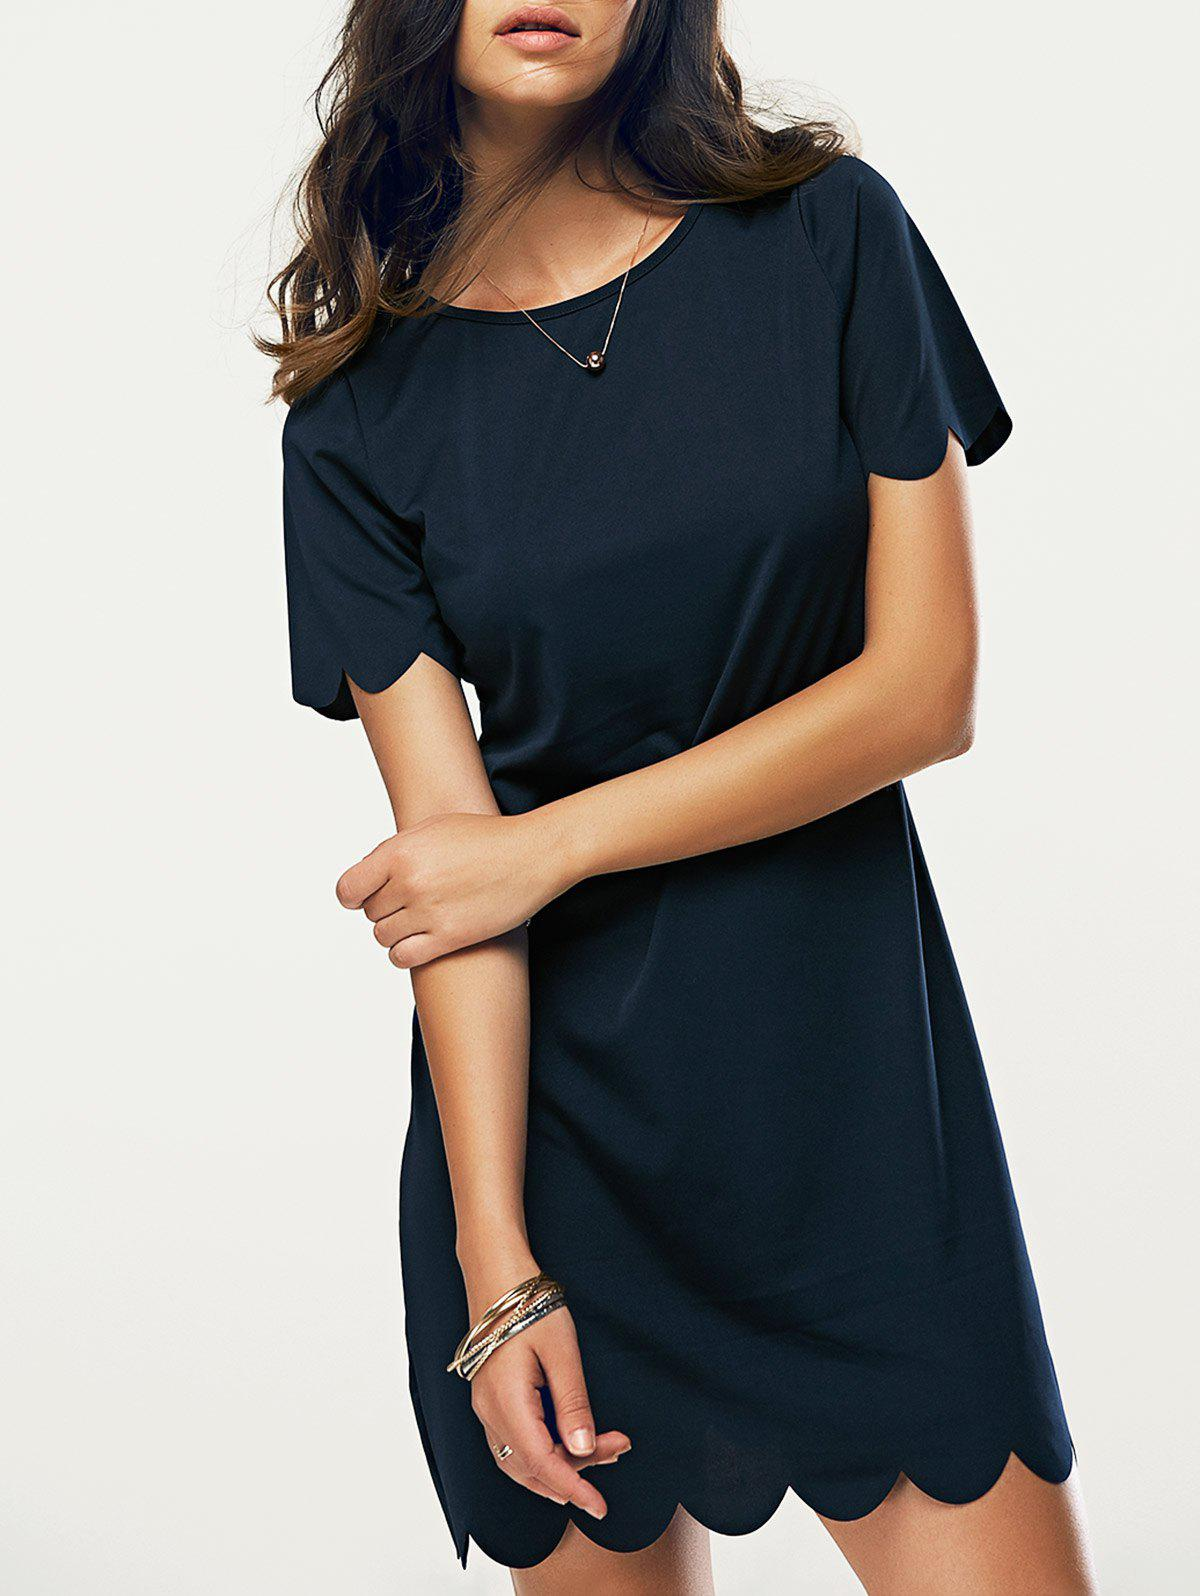 Shops Casual Round Neck Short Sleeve Women's Dress